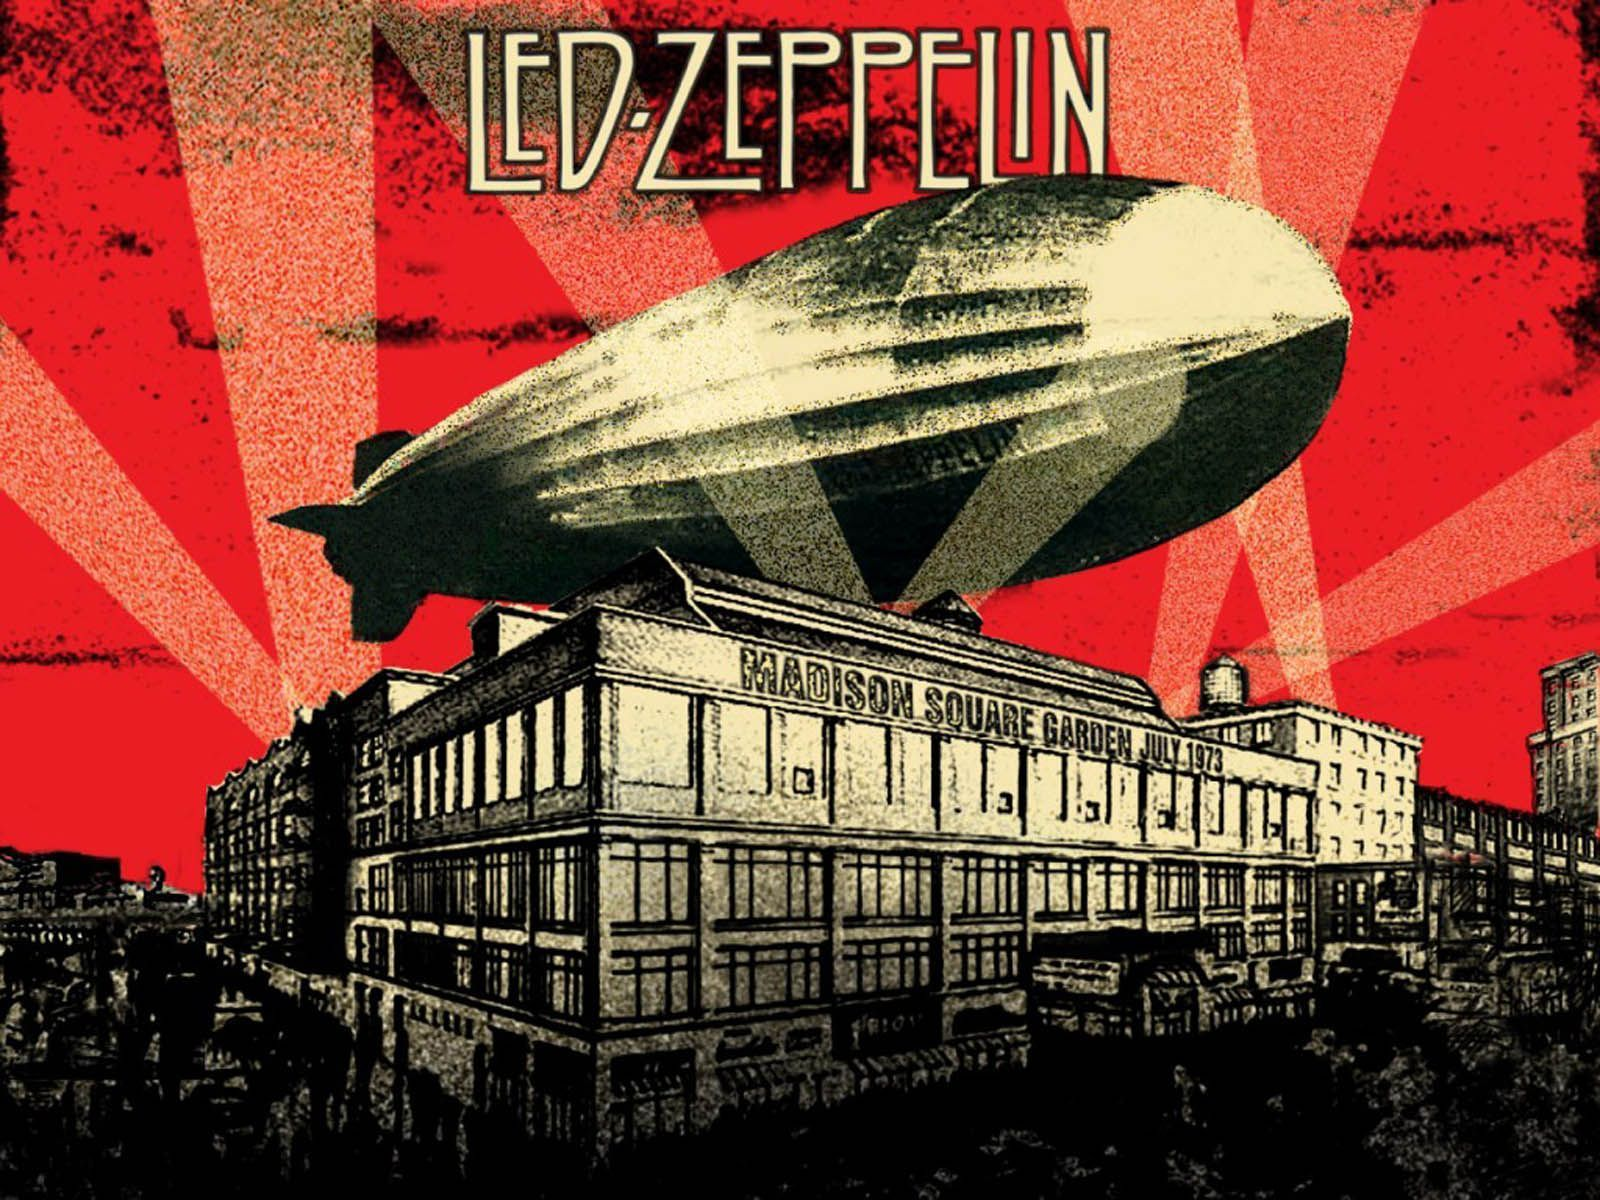 Wallpapers For Led Zeppelin Iphone Wallpaper Led Zeppelin Albums Led Zeppelin Led Zeppelin Kashmir